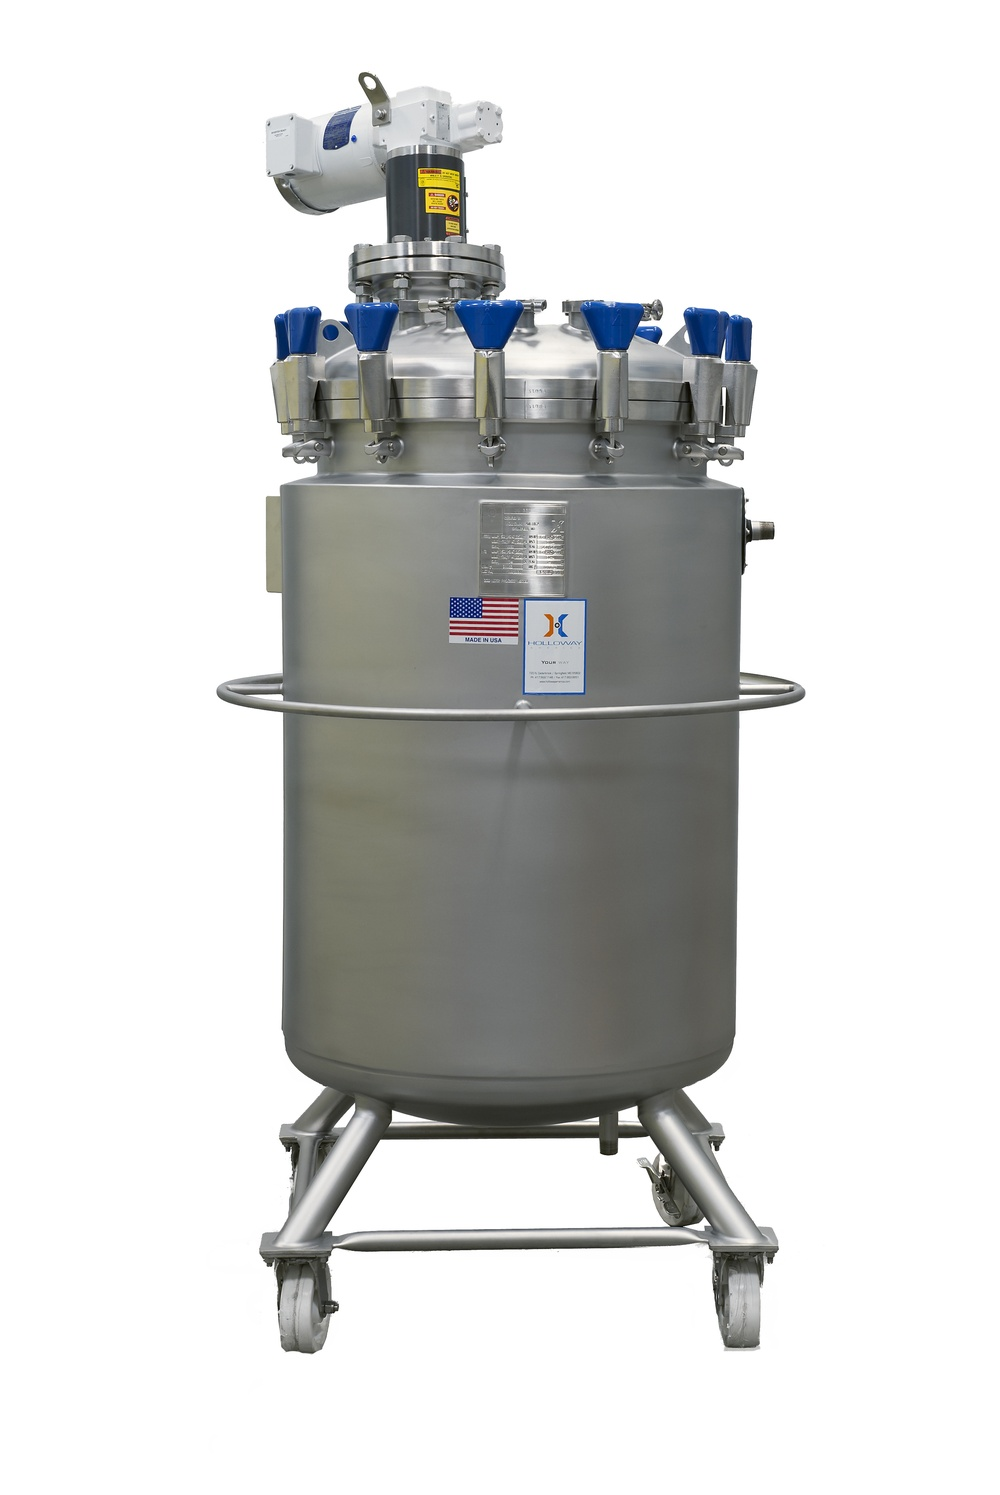 HOLLOWAY proudly crafts mixing tanks like this one for the beverage industry.